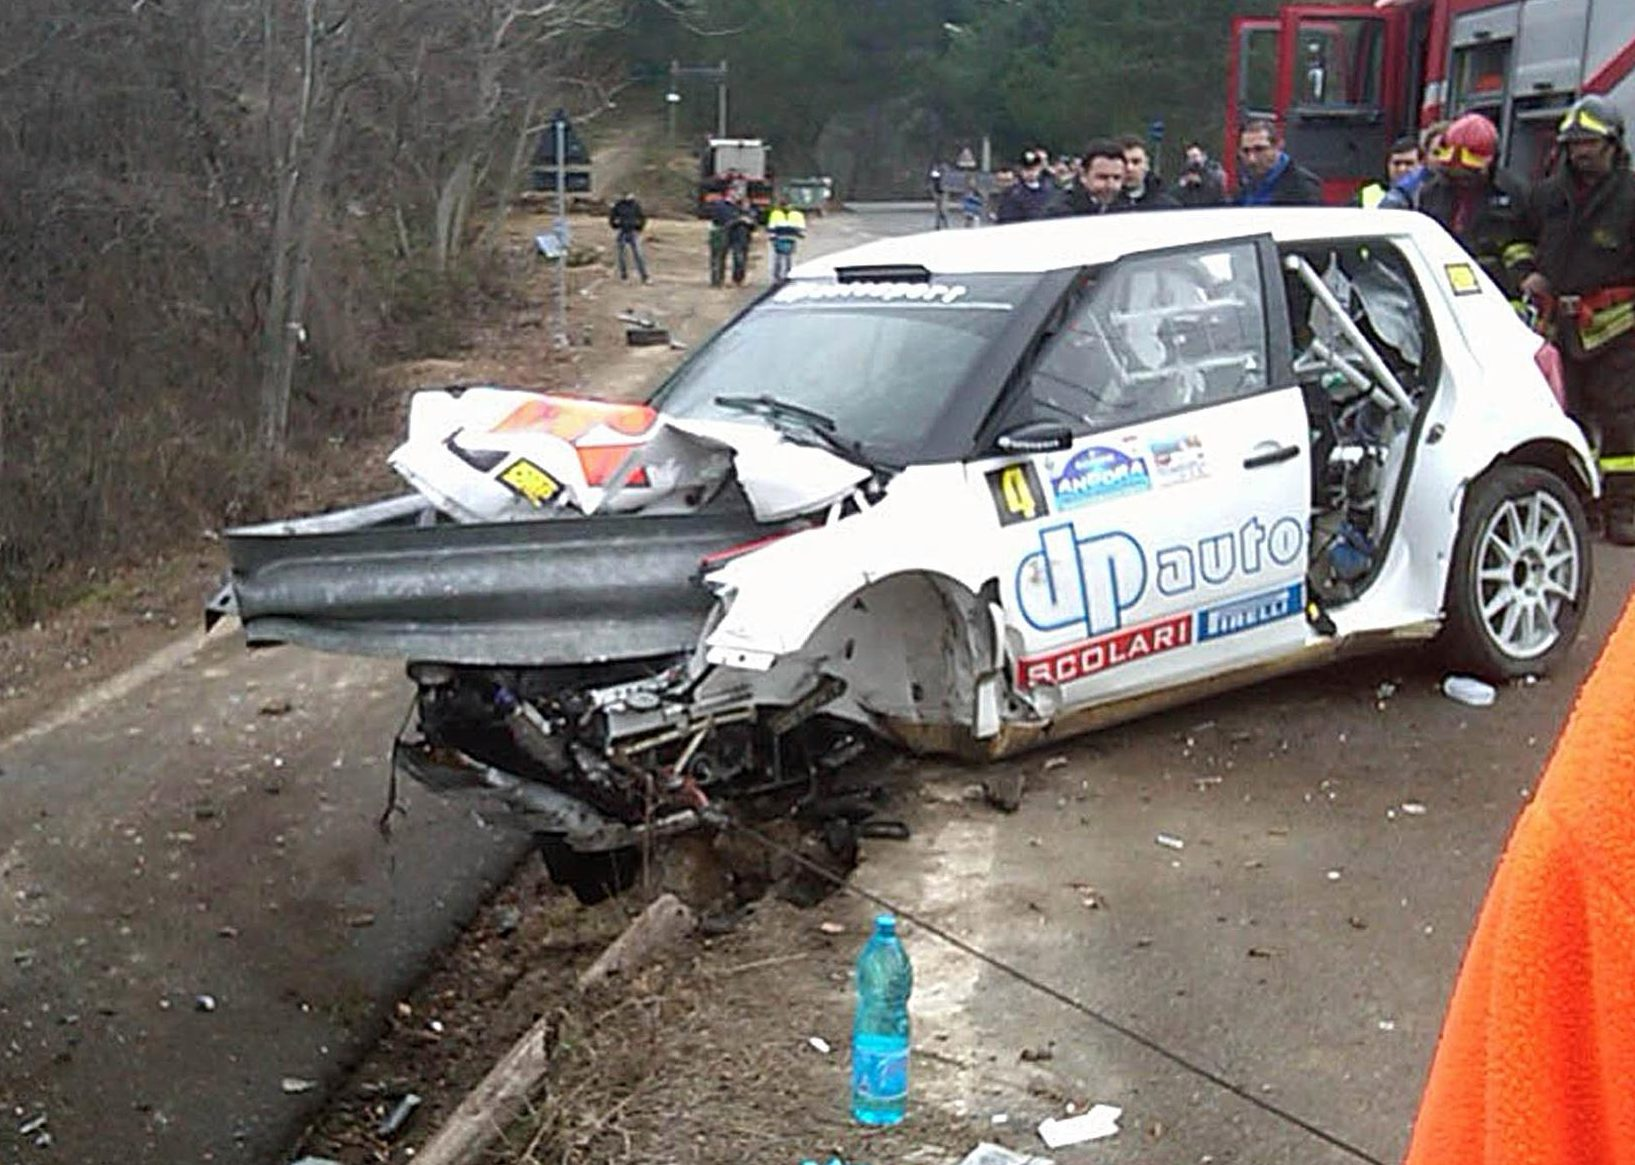 The crash barrier penetrated the cockpit of the car but Kubica's co-driver survived unscathed